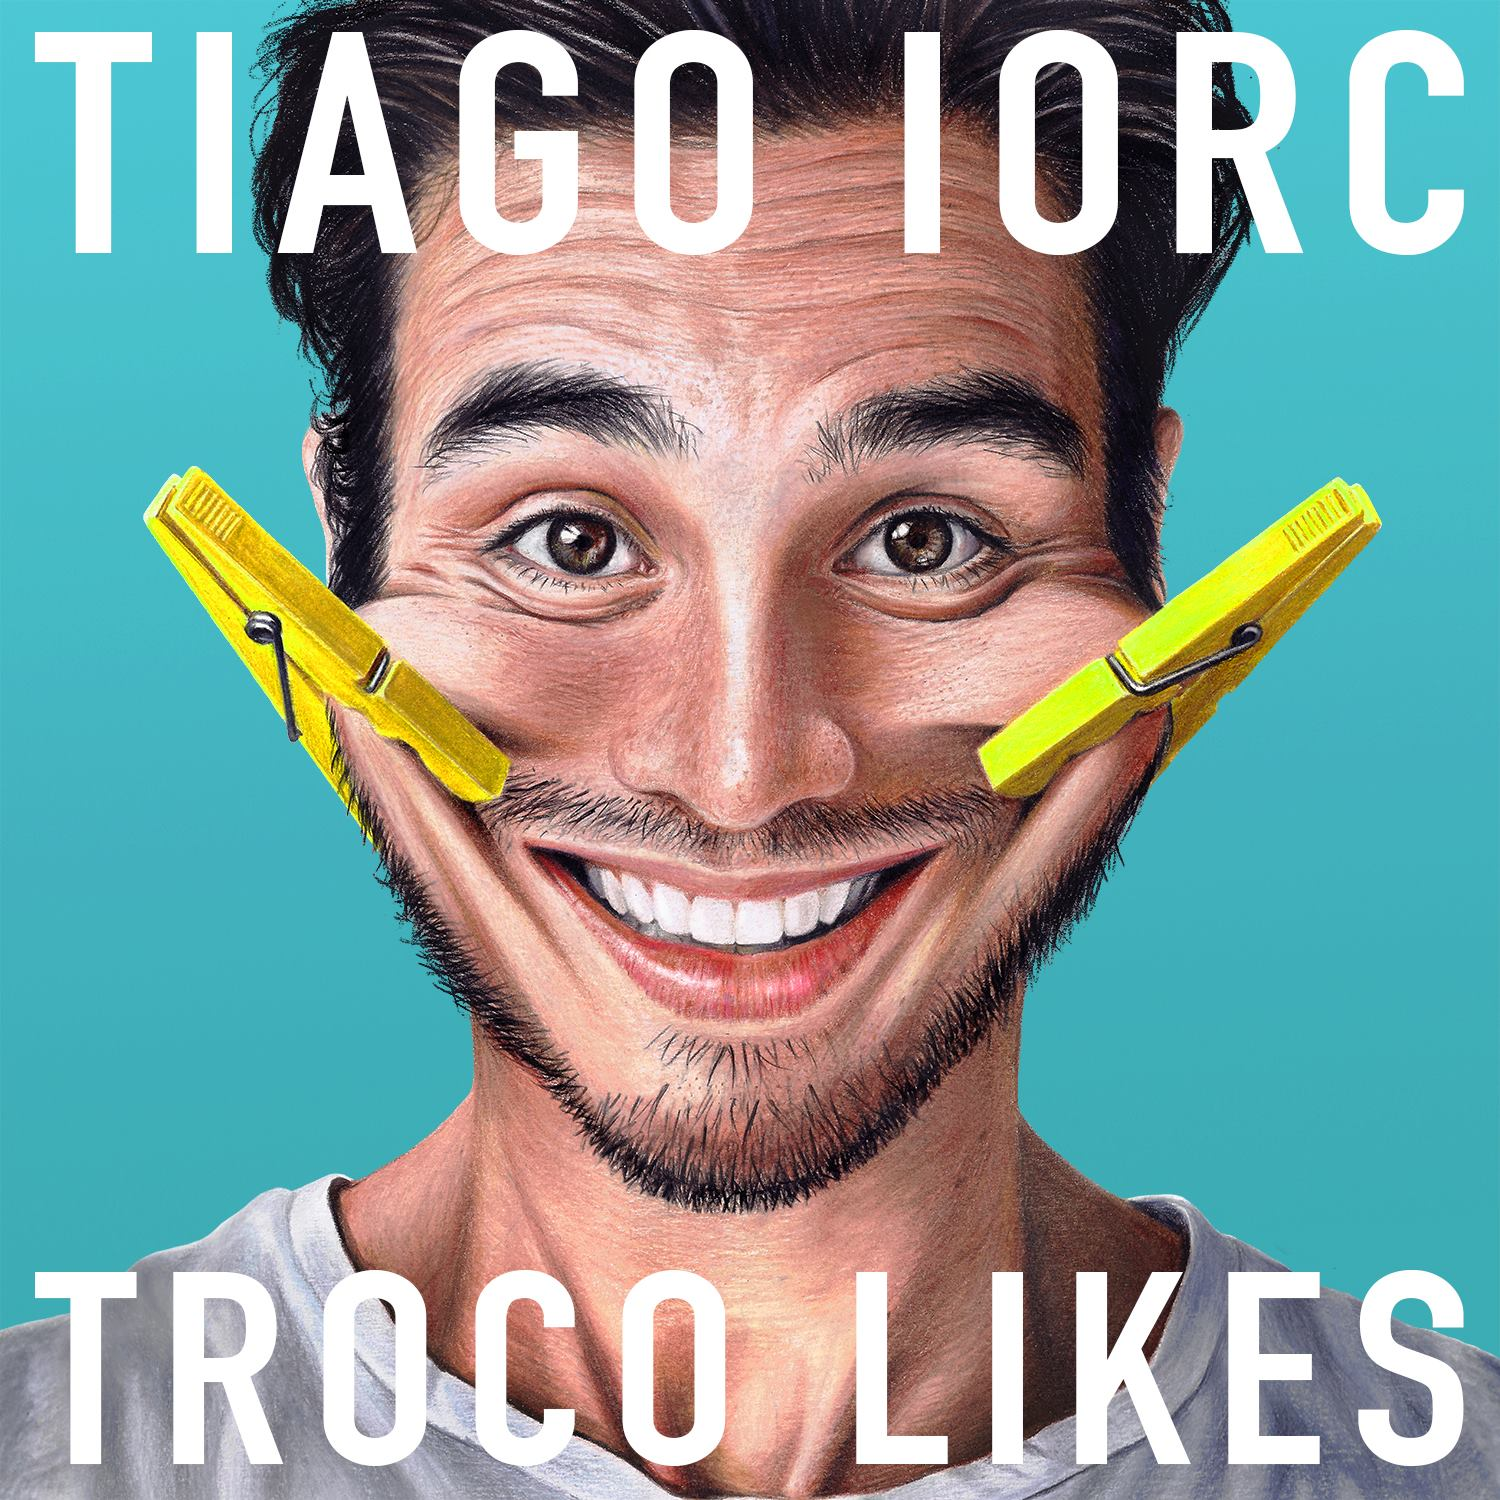 central-da-mpb-disco-album-cd-tiago-iorc-troco-likes